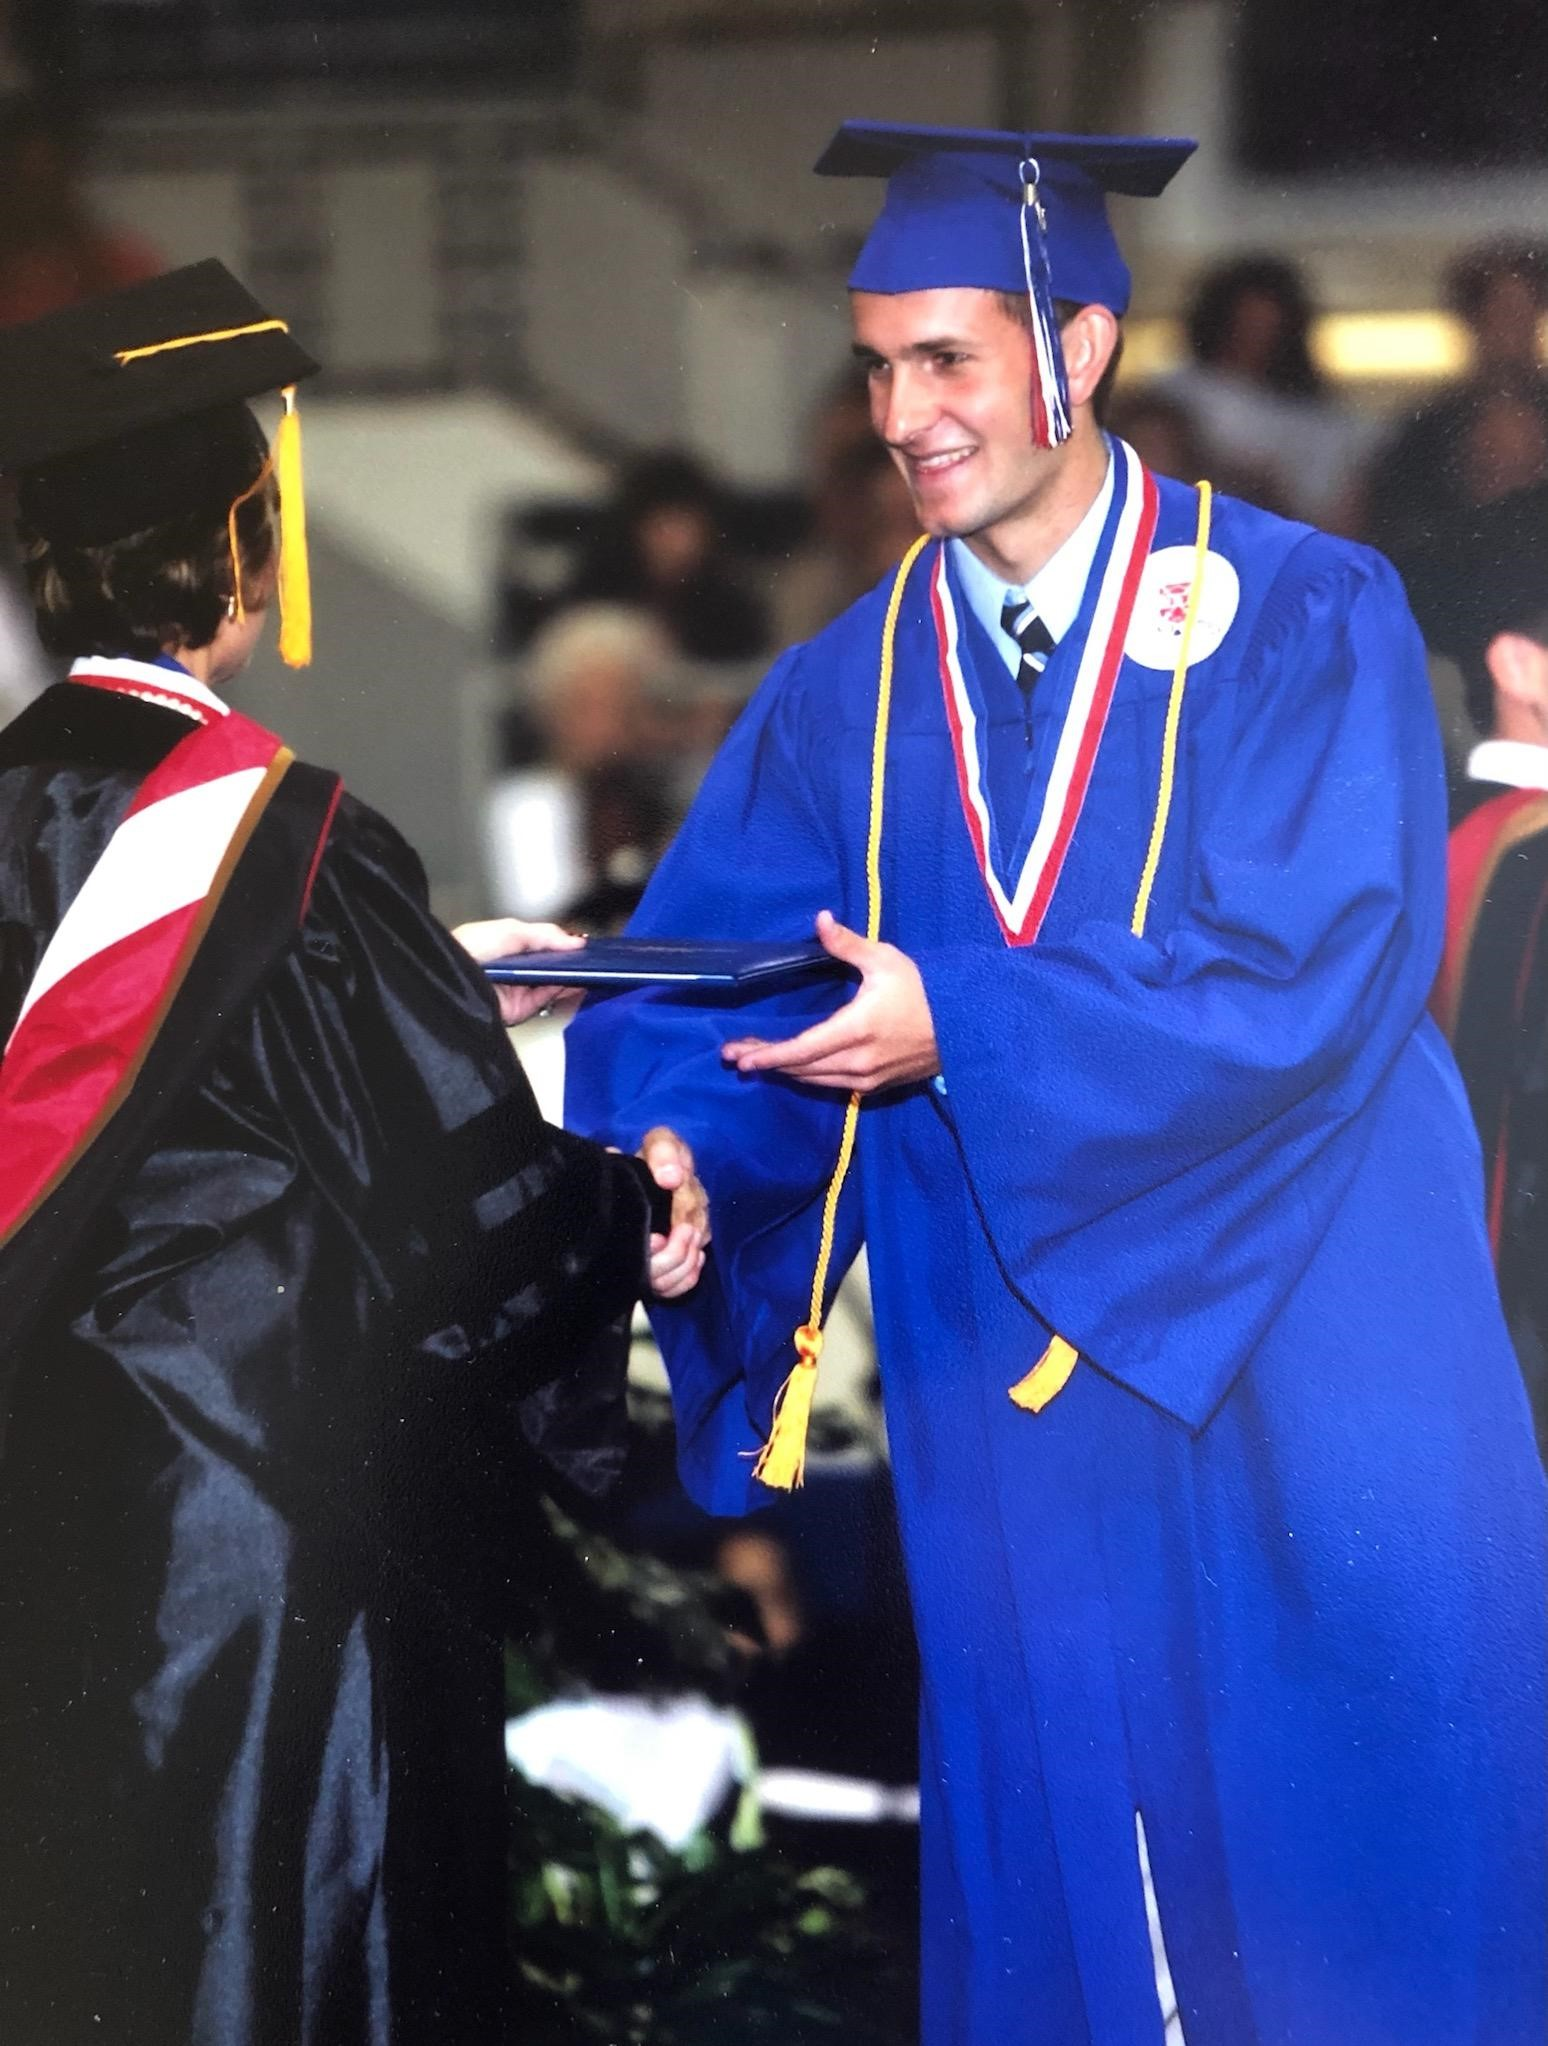 scott spillman in his cap and gown receiving his diploma at his high school graduation